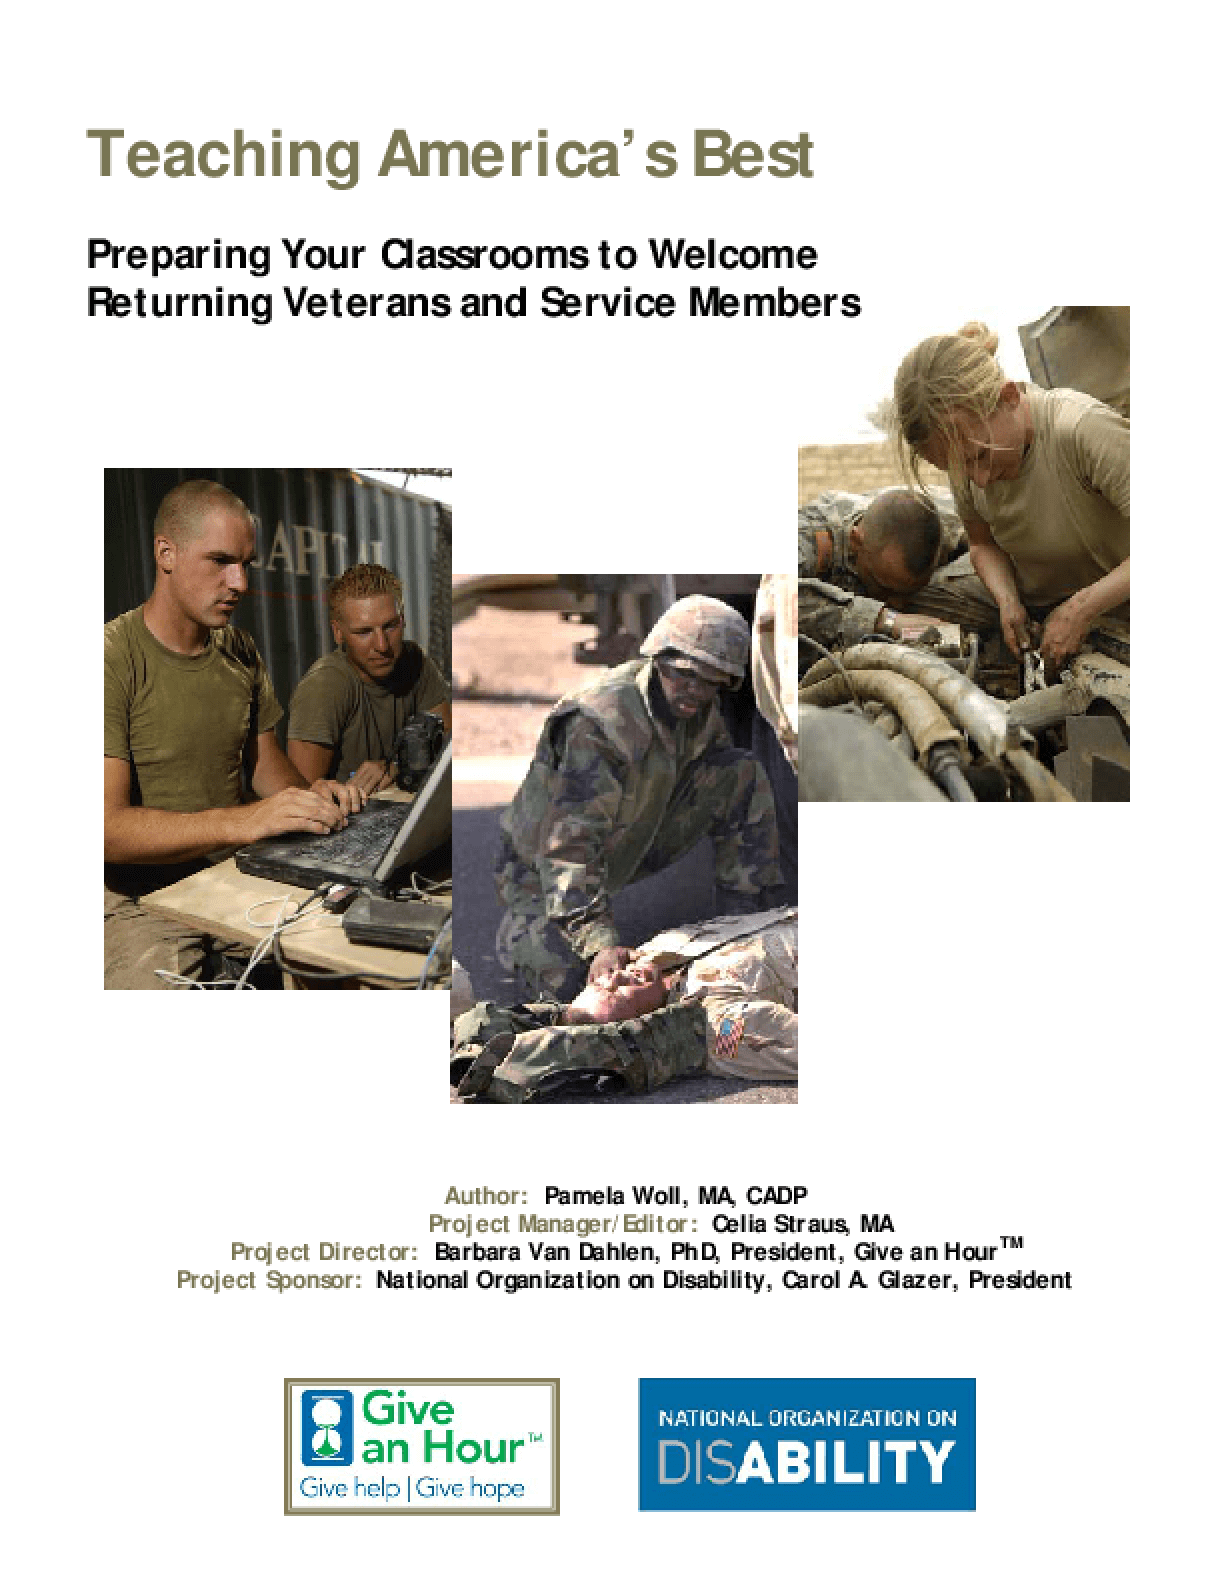 Teaching America's Best: Preparing Your Classrooms to Welcome Returning Veterans and Service Members